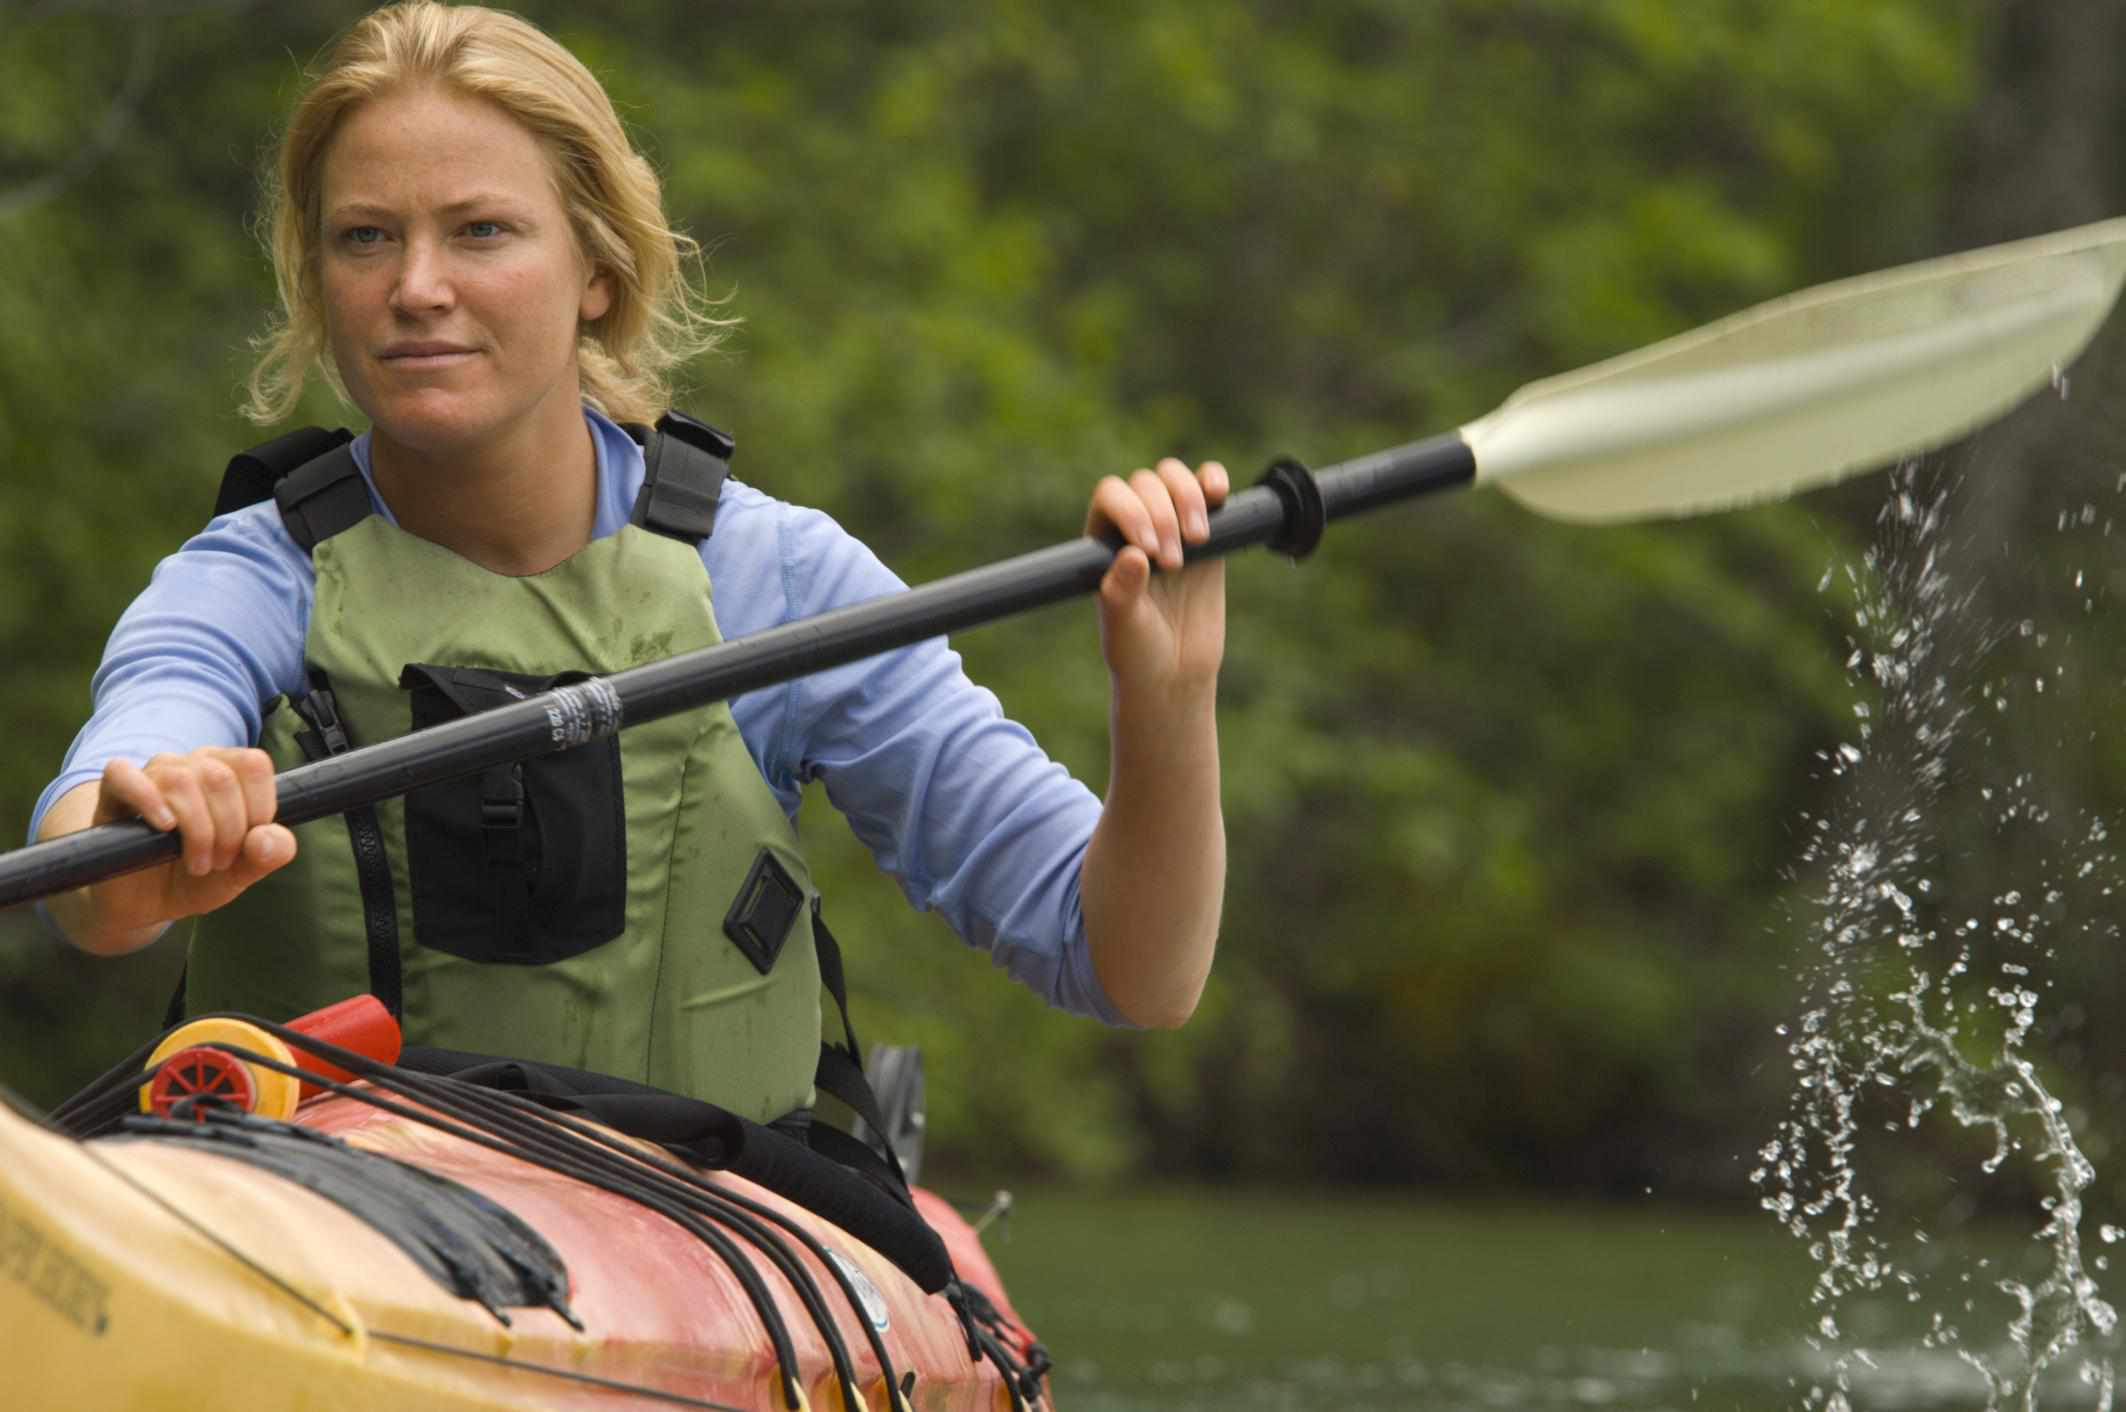 how to avoid muscle soreness from kayaking